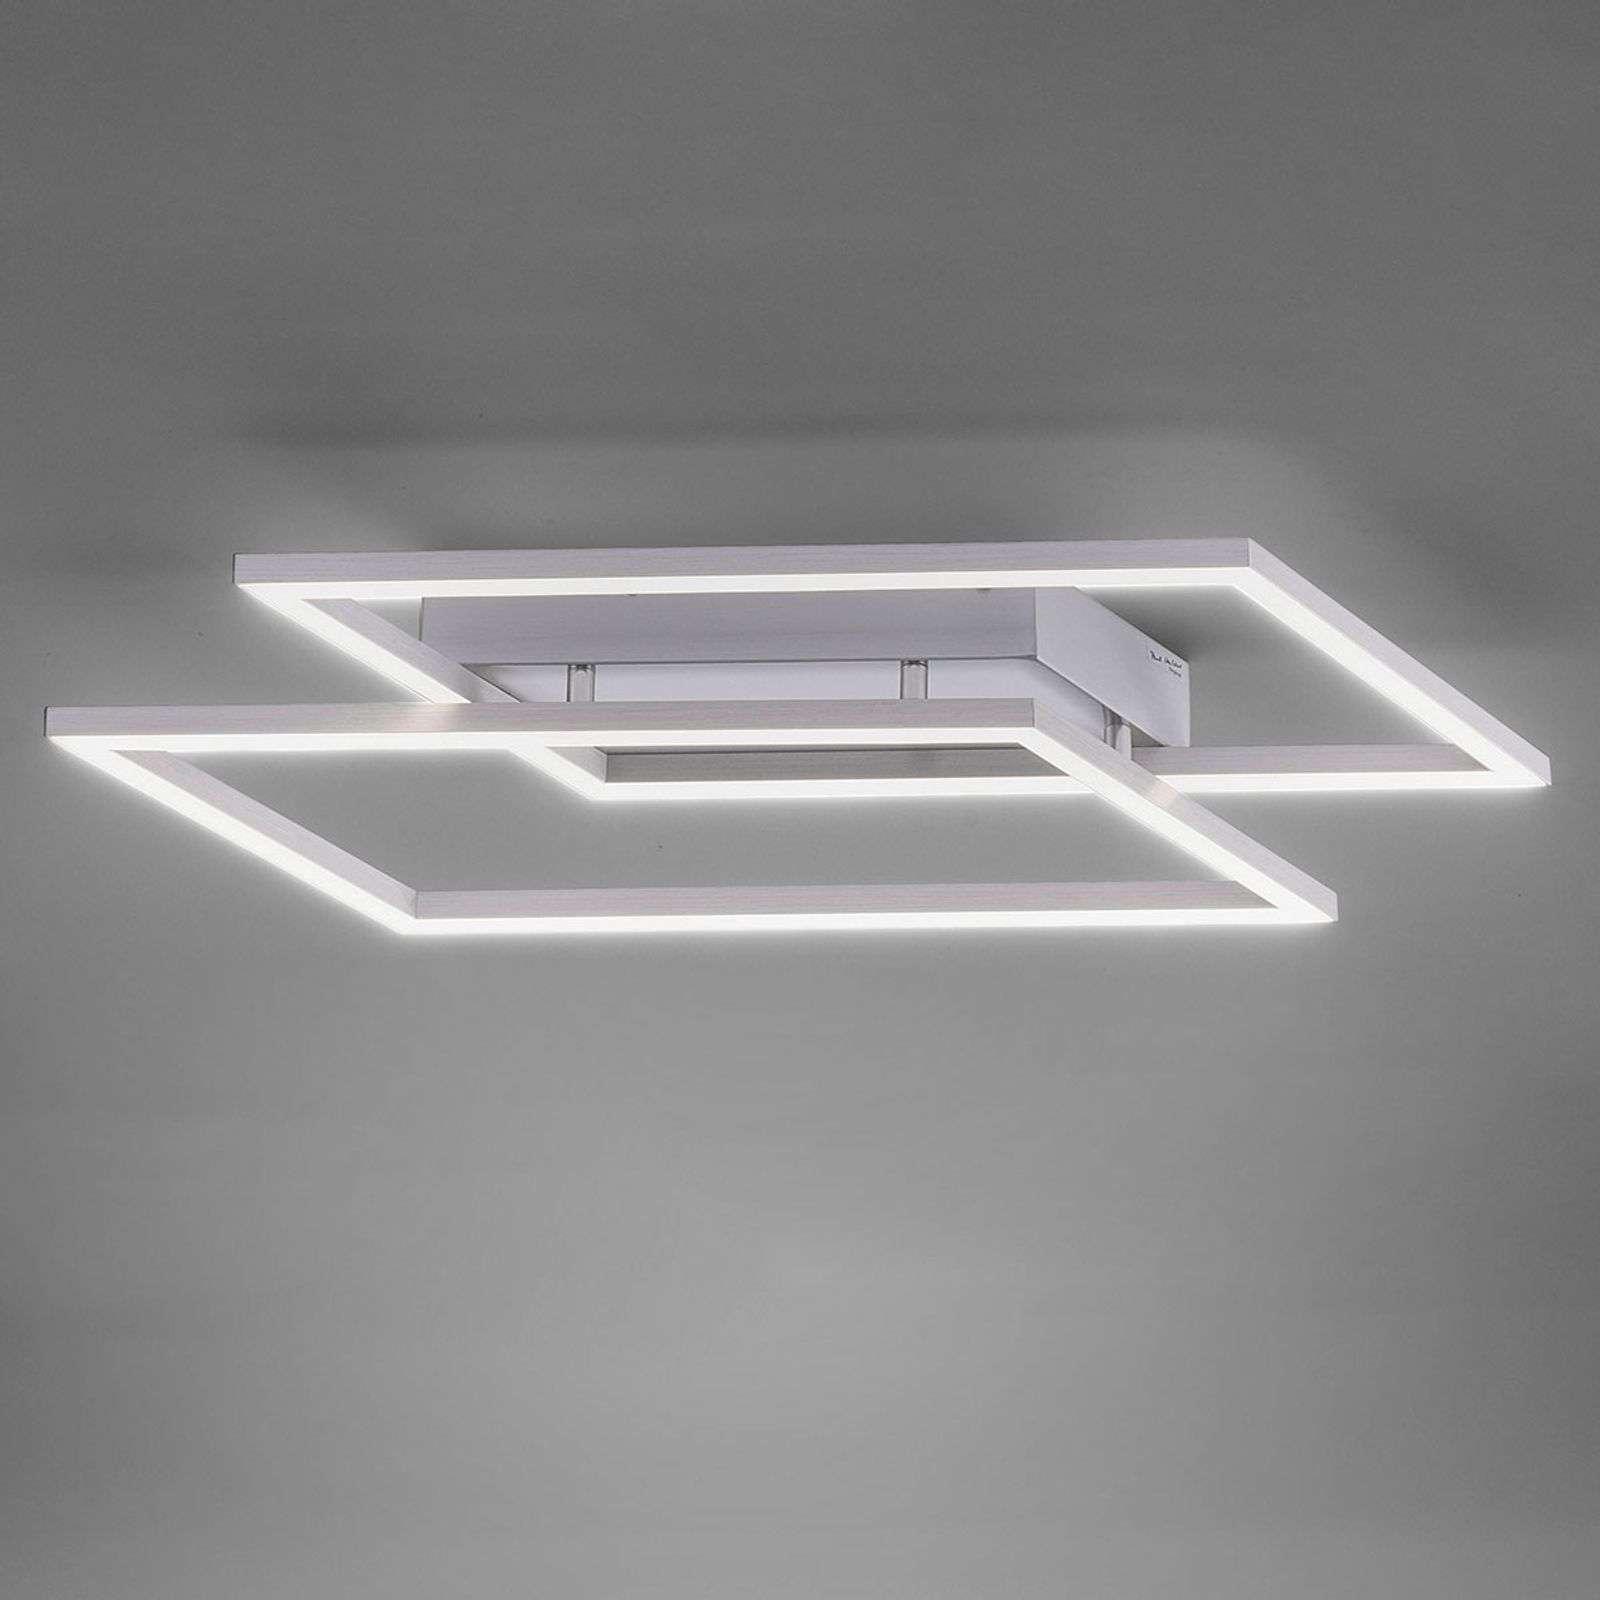 Plafoniera LED Quadra dimmerabile con interruttore